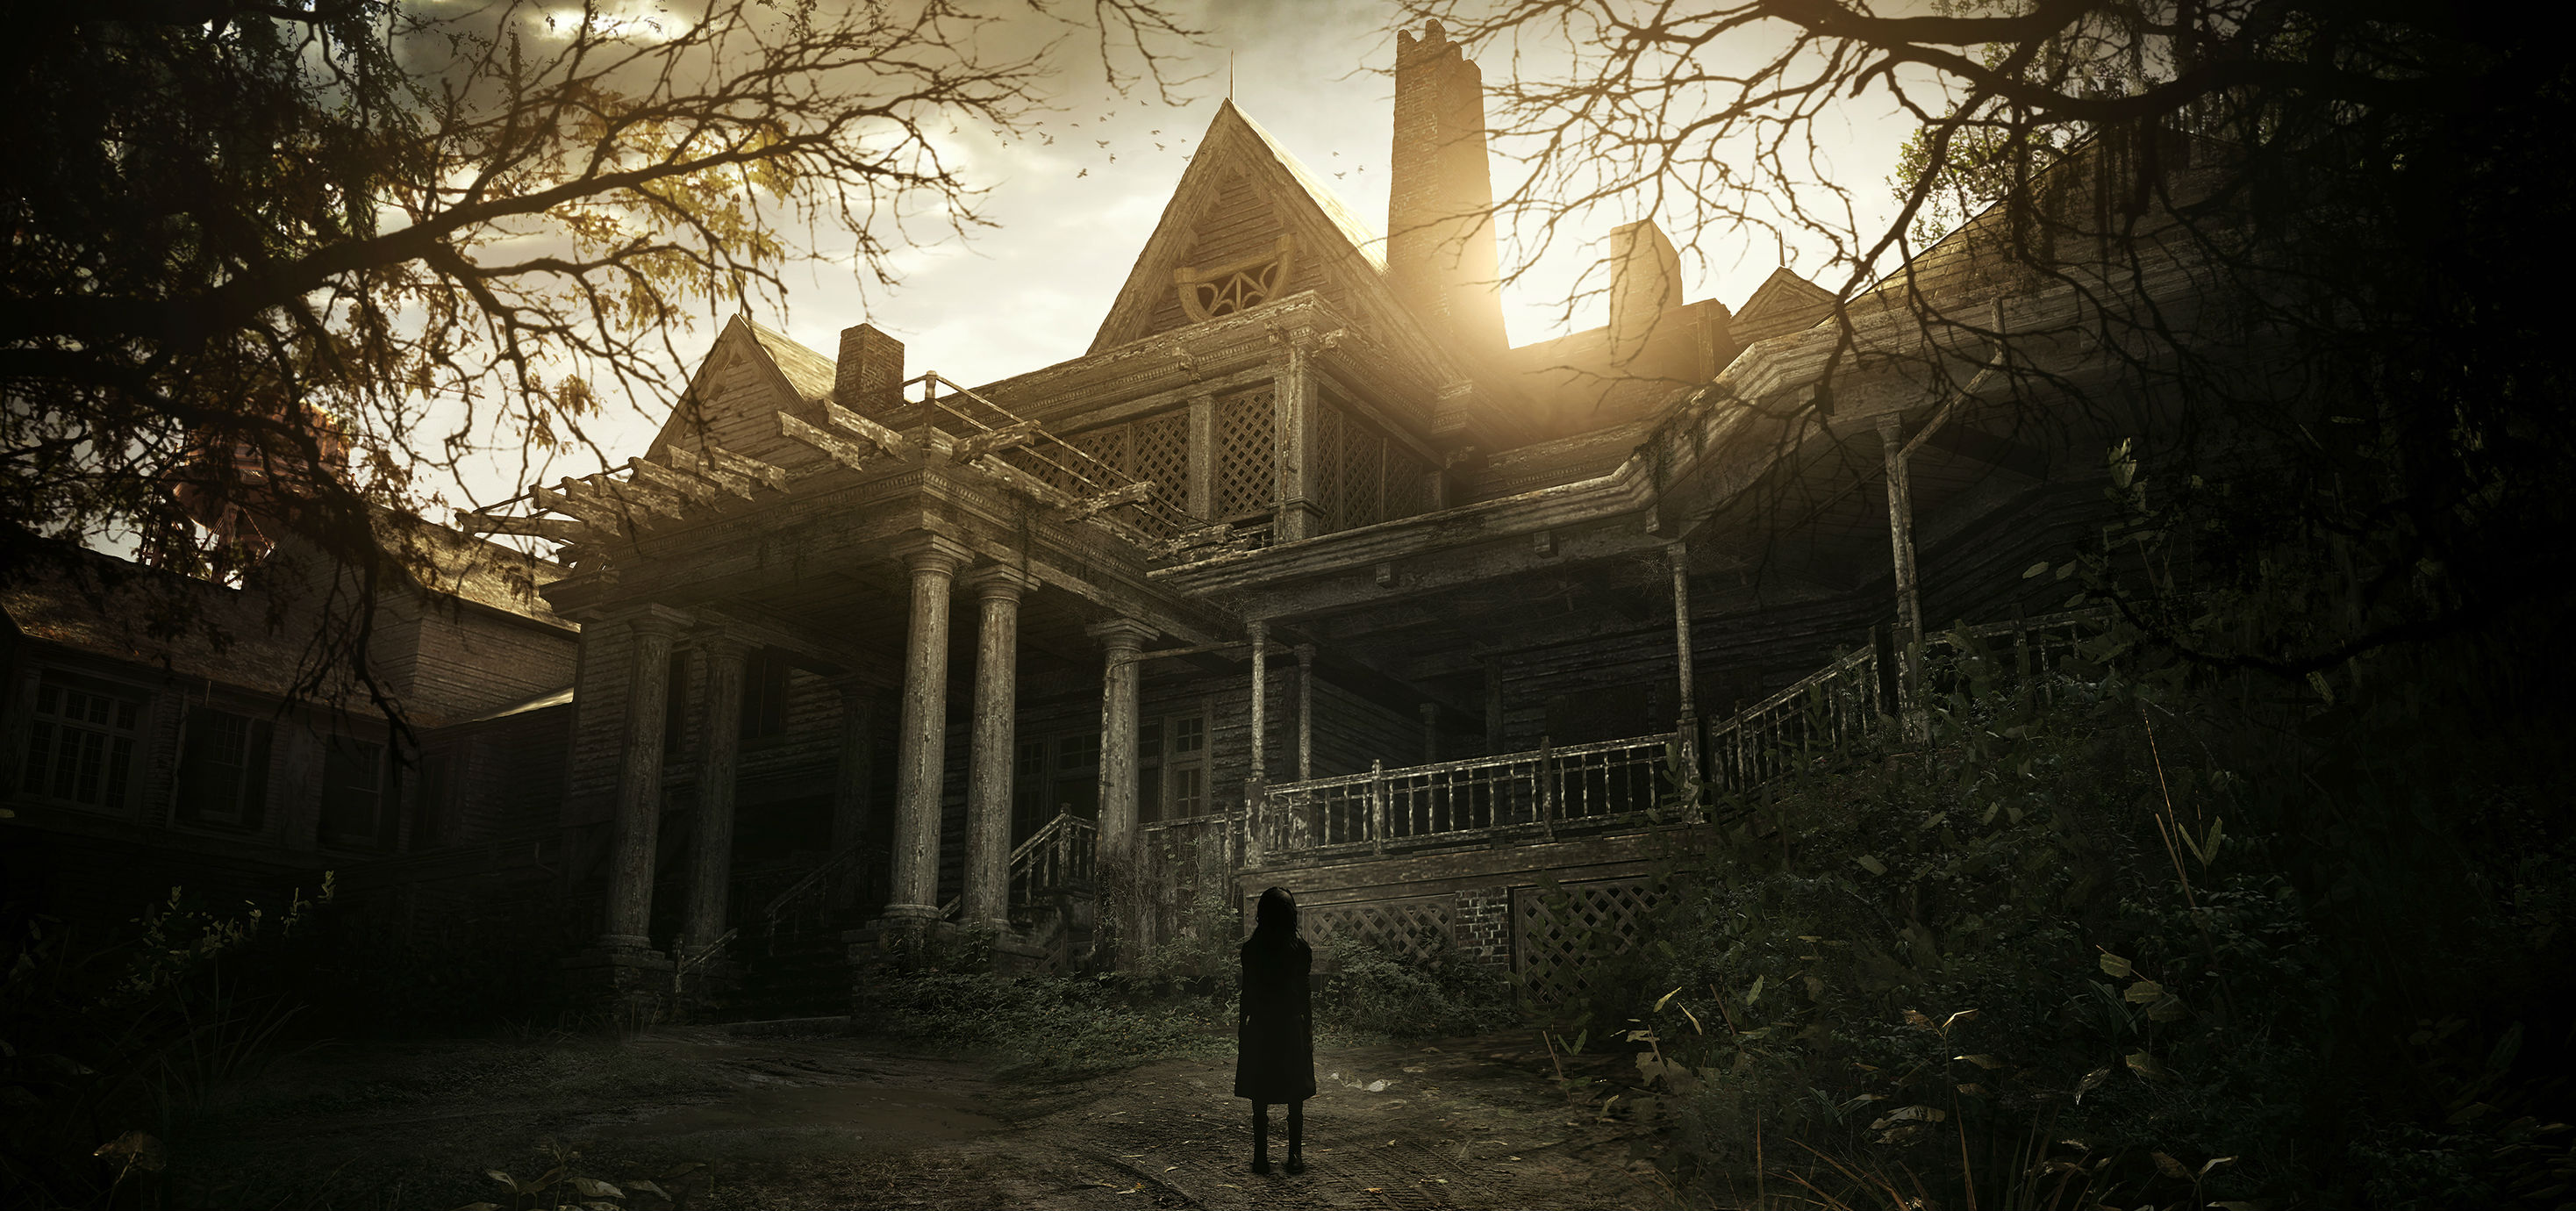 Resident Evil 7\'s \'Kitchen\' demo is out now on PlayStation VR